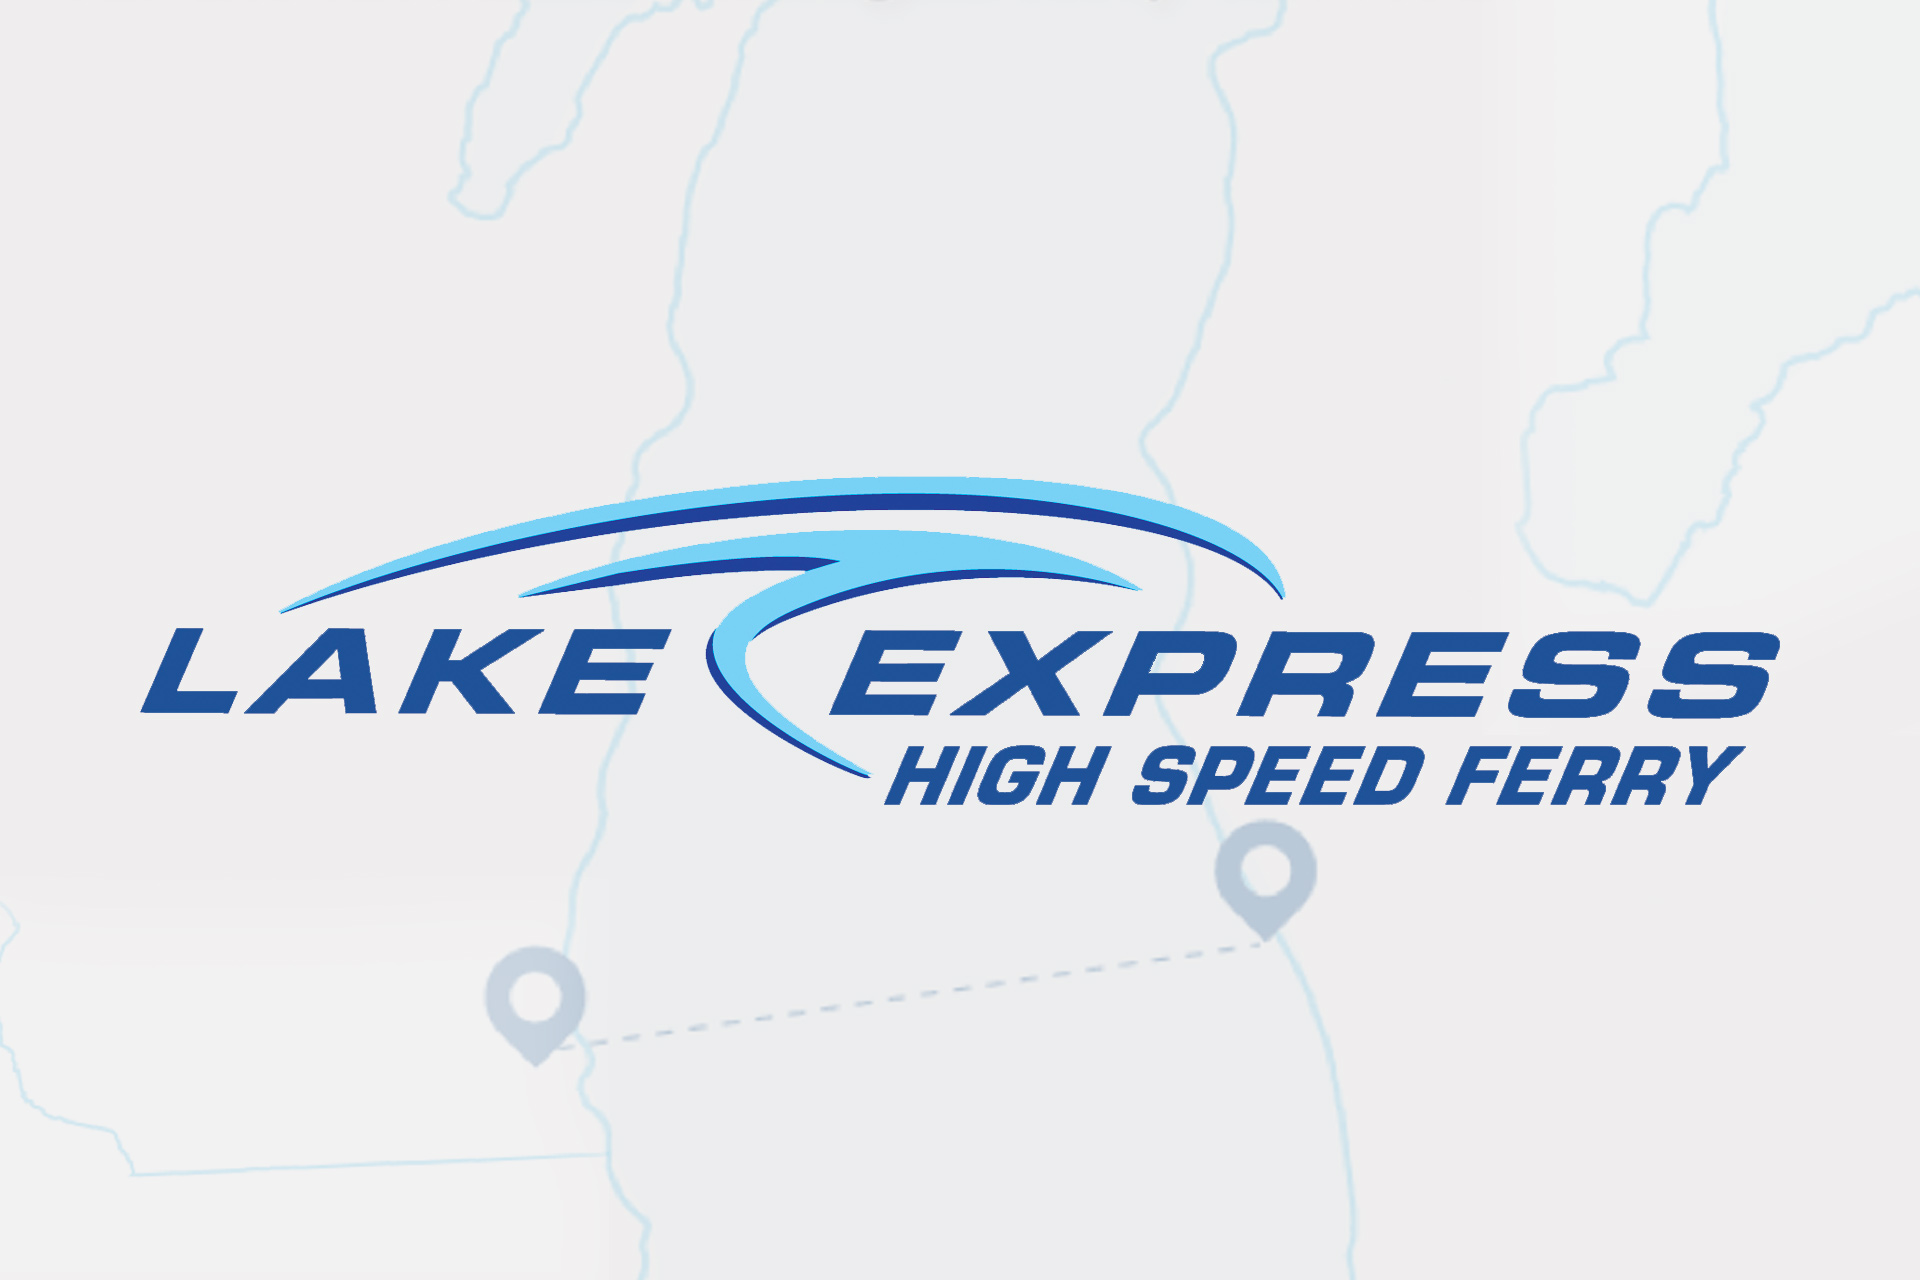 Lake Express High Speed Ferry